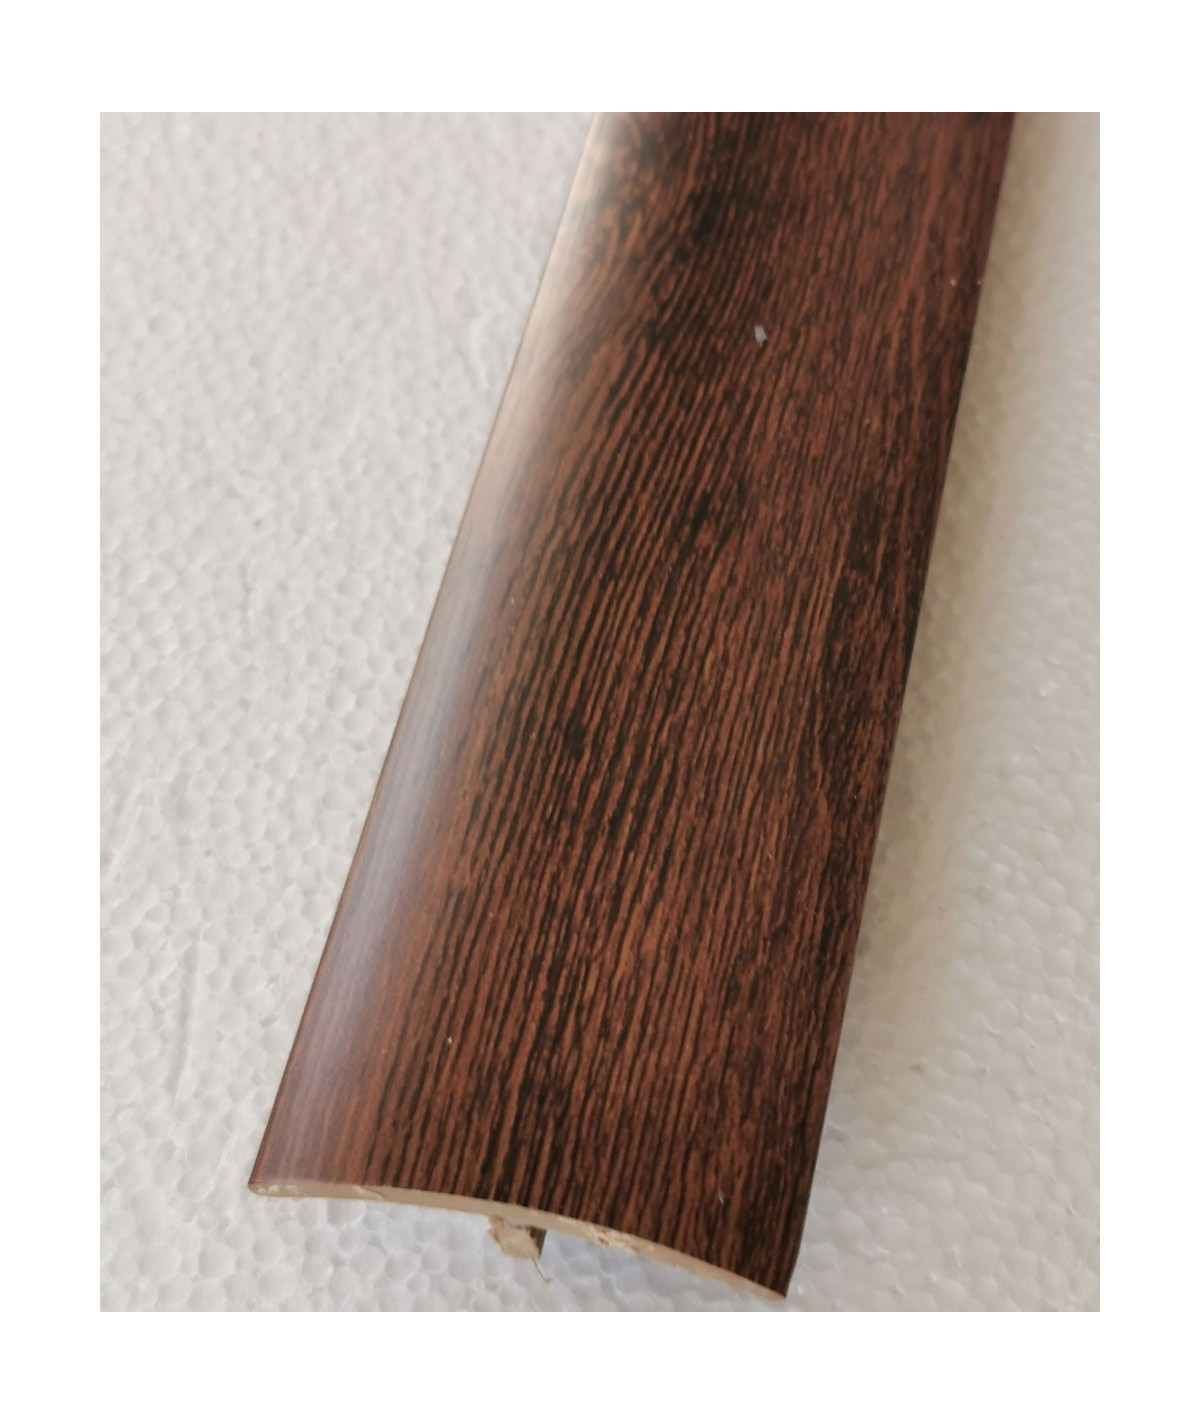 Red Hickory Adhesive Laminate Door Threshold Strip 38mm x 90cm Multi-Height/Pivots